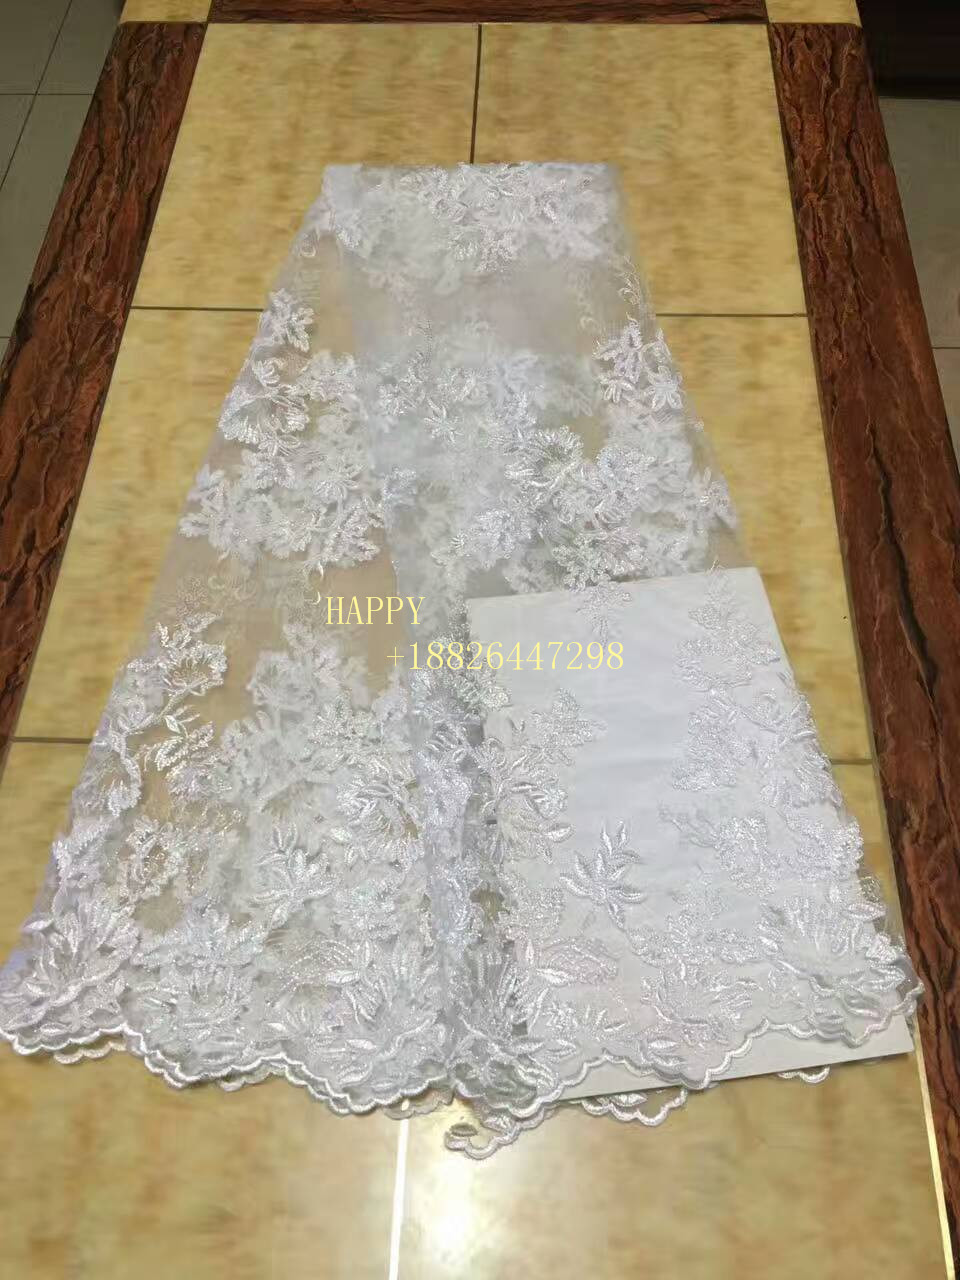 The Best 3d Lace Fabric 2018 High Quality Lace African Lace Fabric Net French Tulle Lace Fabric Lr043 Free Ship By Dhl Apparel & Merchandise